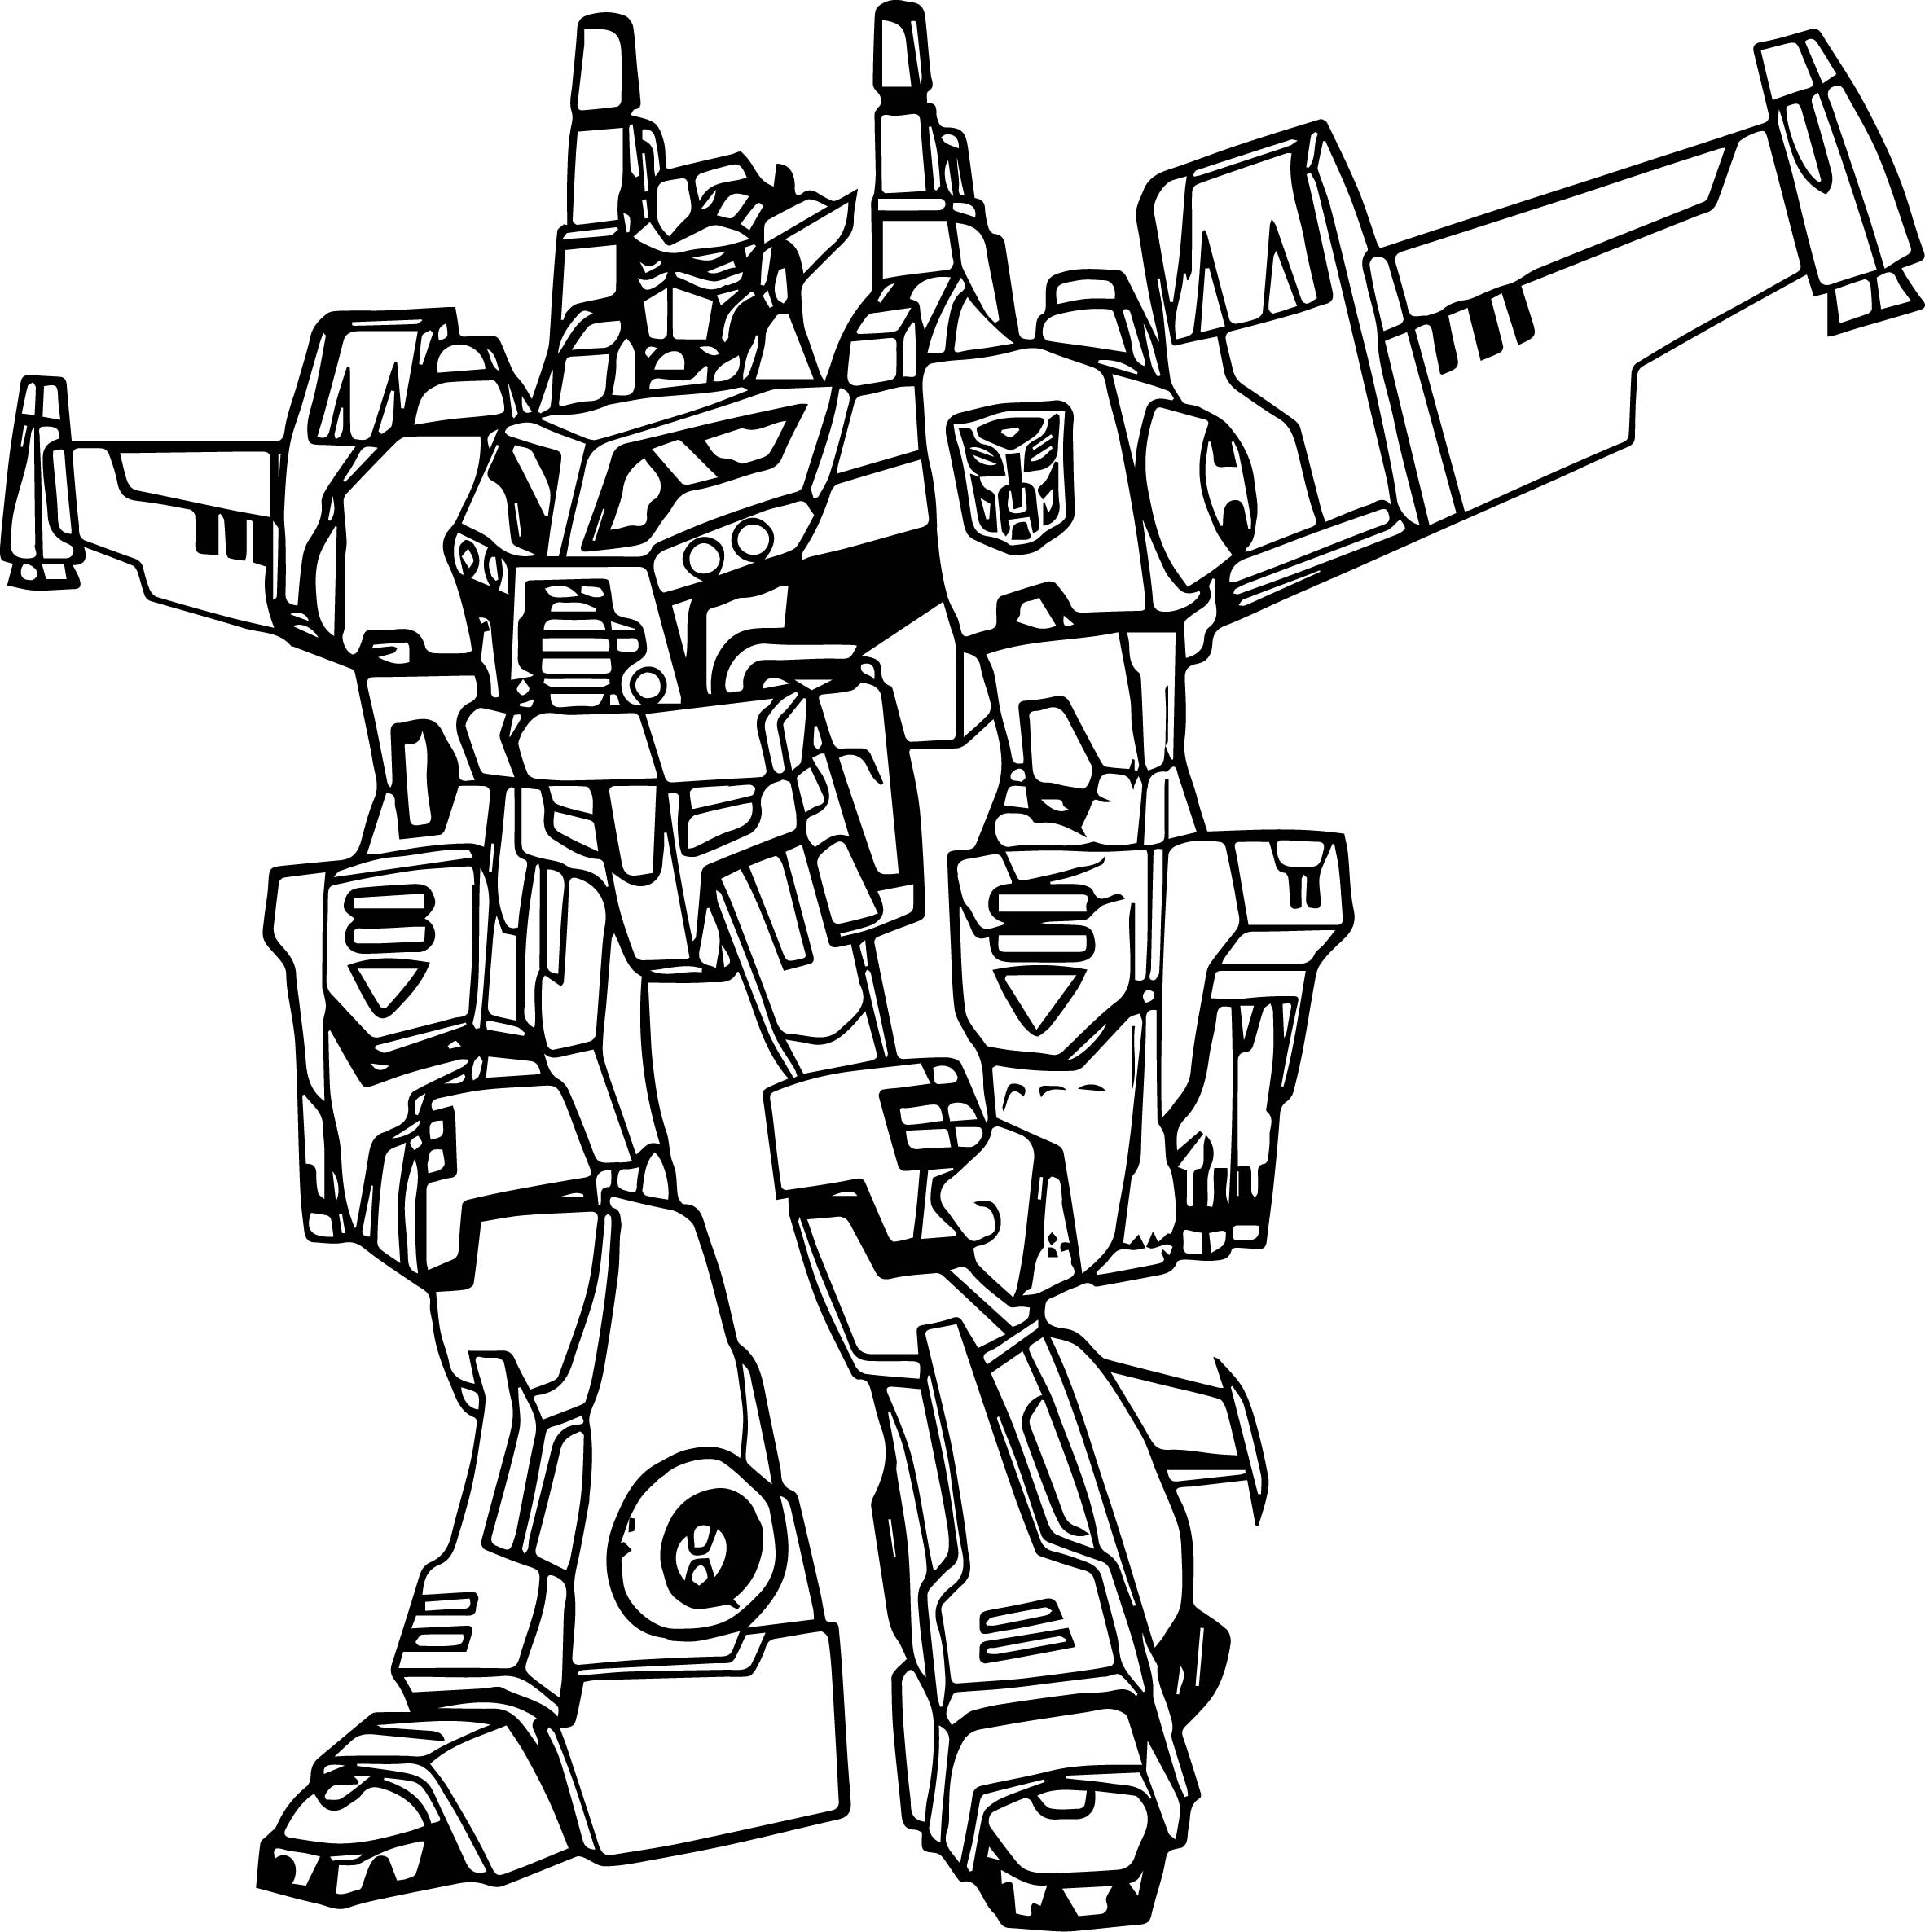 optimus prime animated coloring pages | Transformers Optimus Prime Coloring Page | Wecoloringpage.com